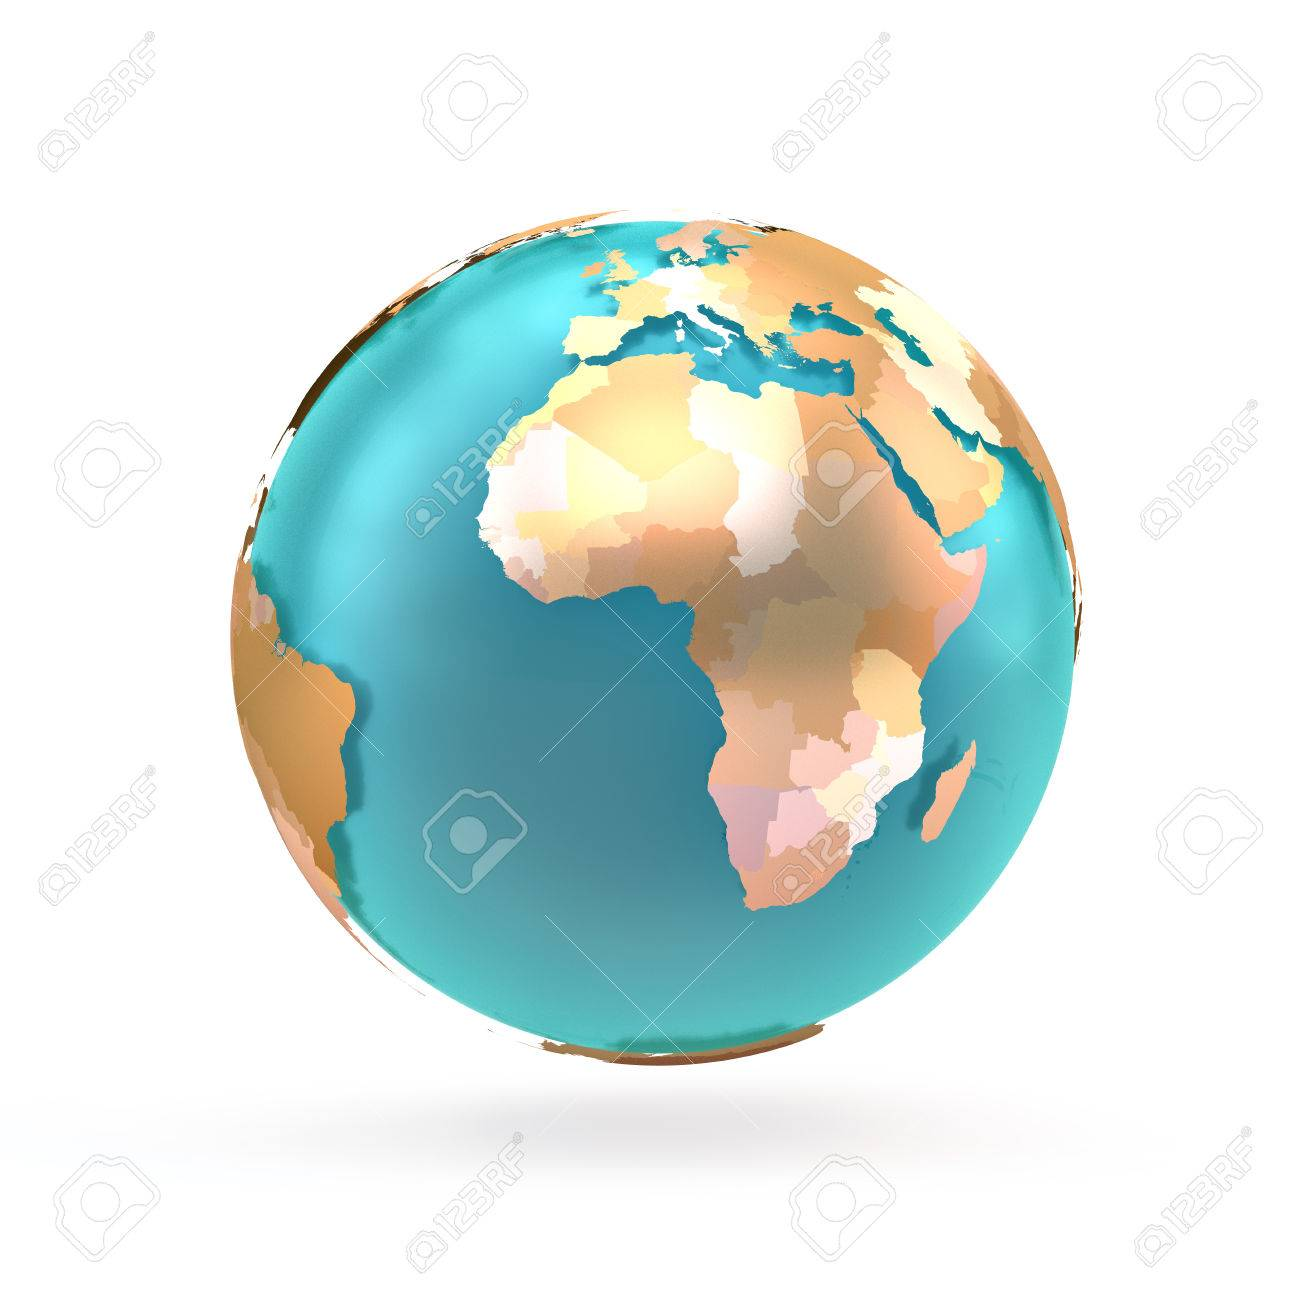 D Globe Map Of The World Continents And Countries Globe With - Globe map with countries